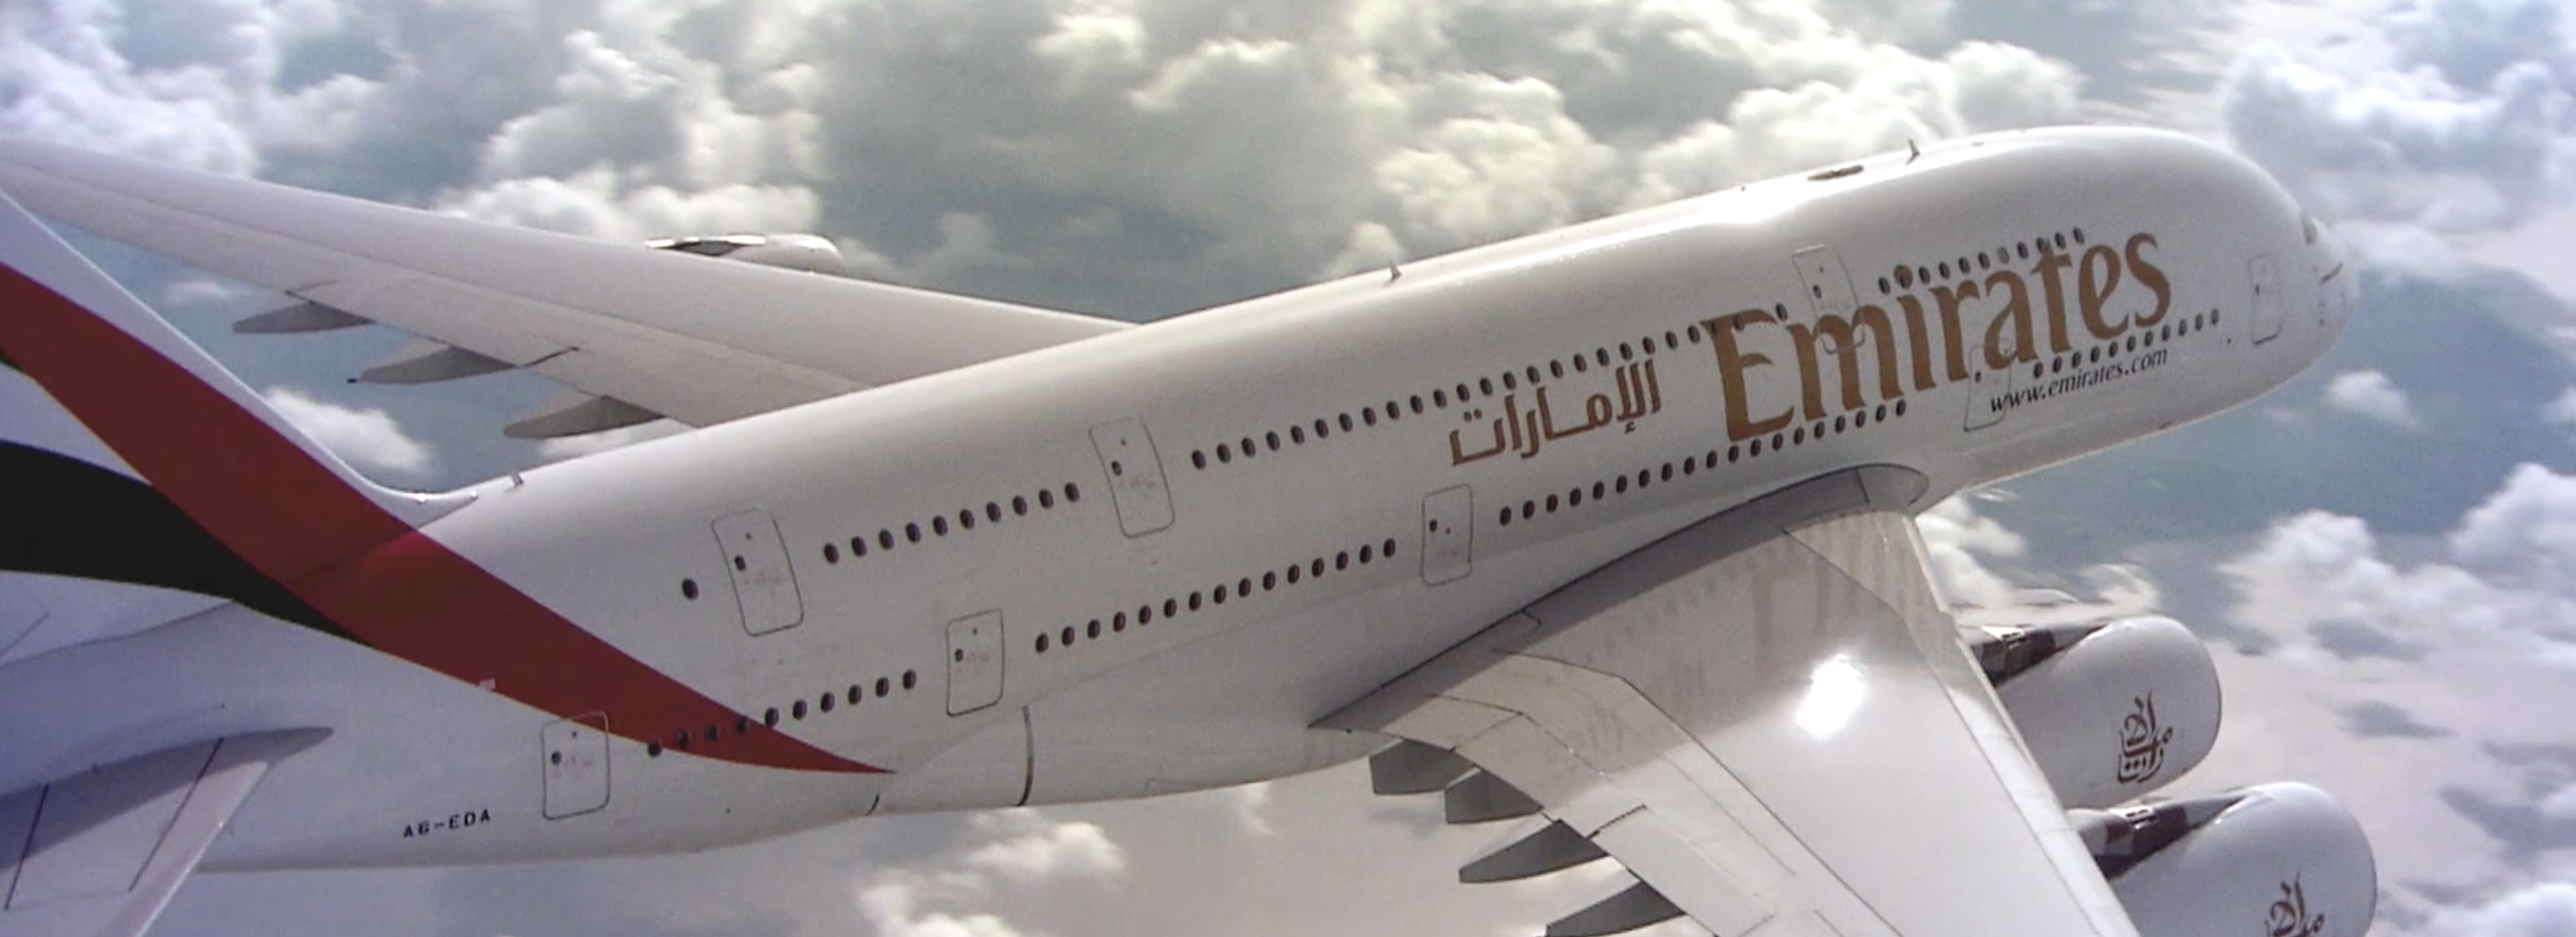 commercial-fly-emirates-psg-paris-saint-germain-diez-films